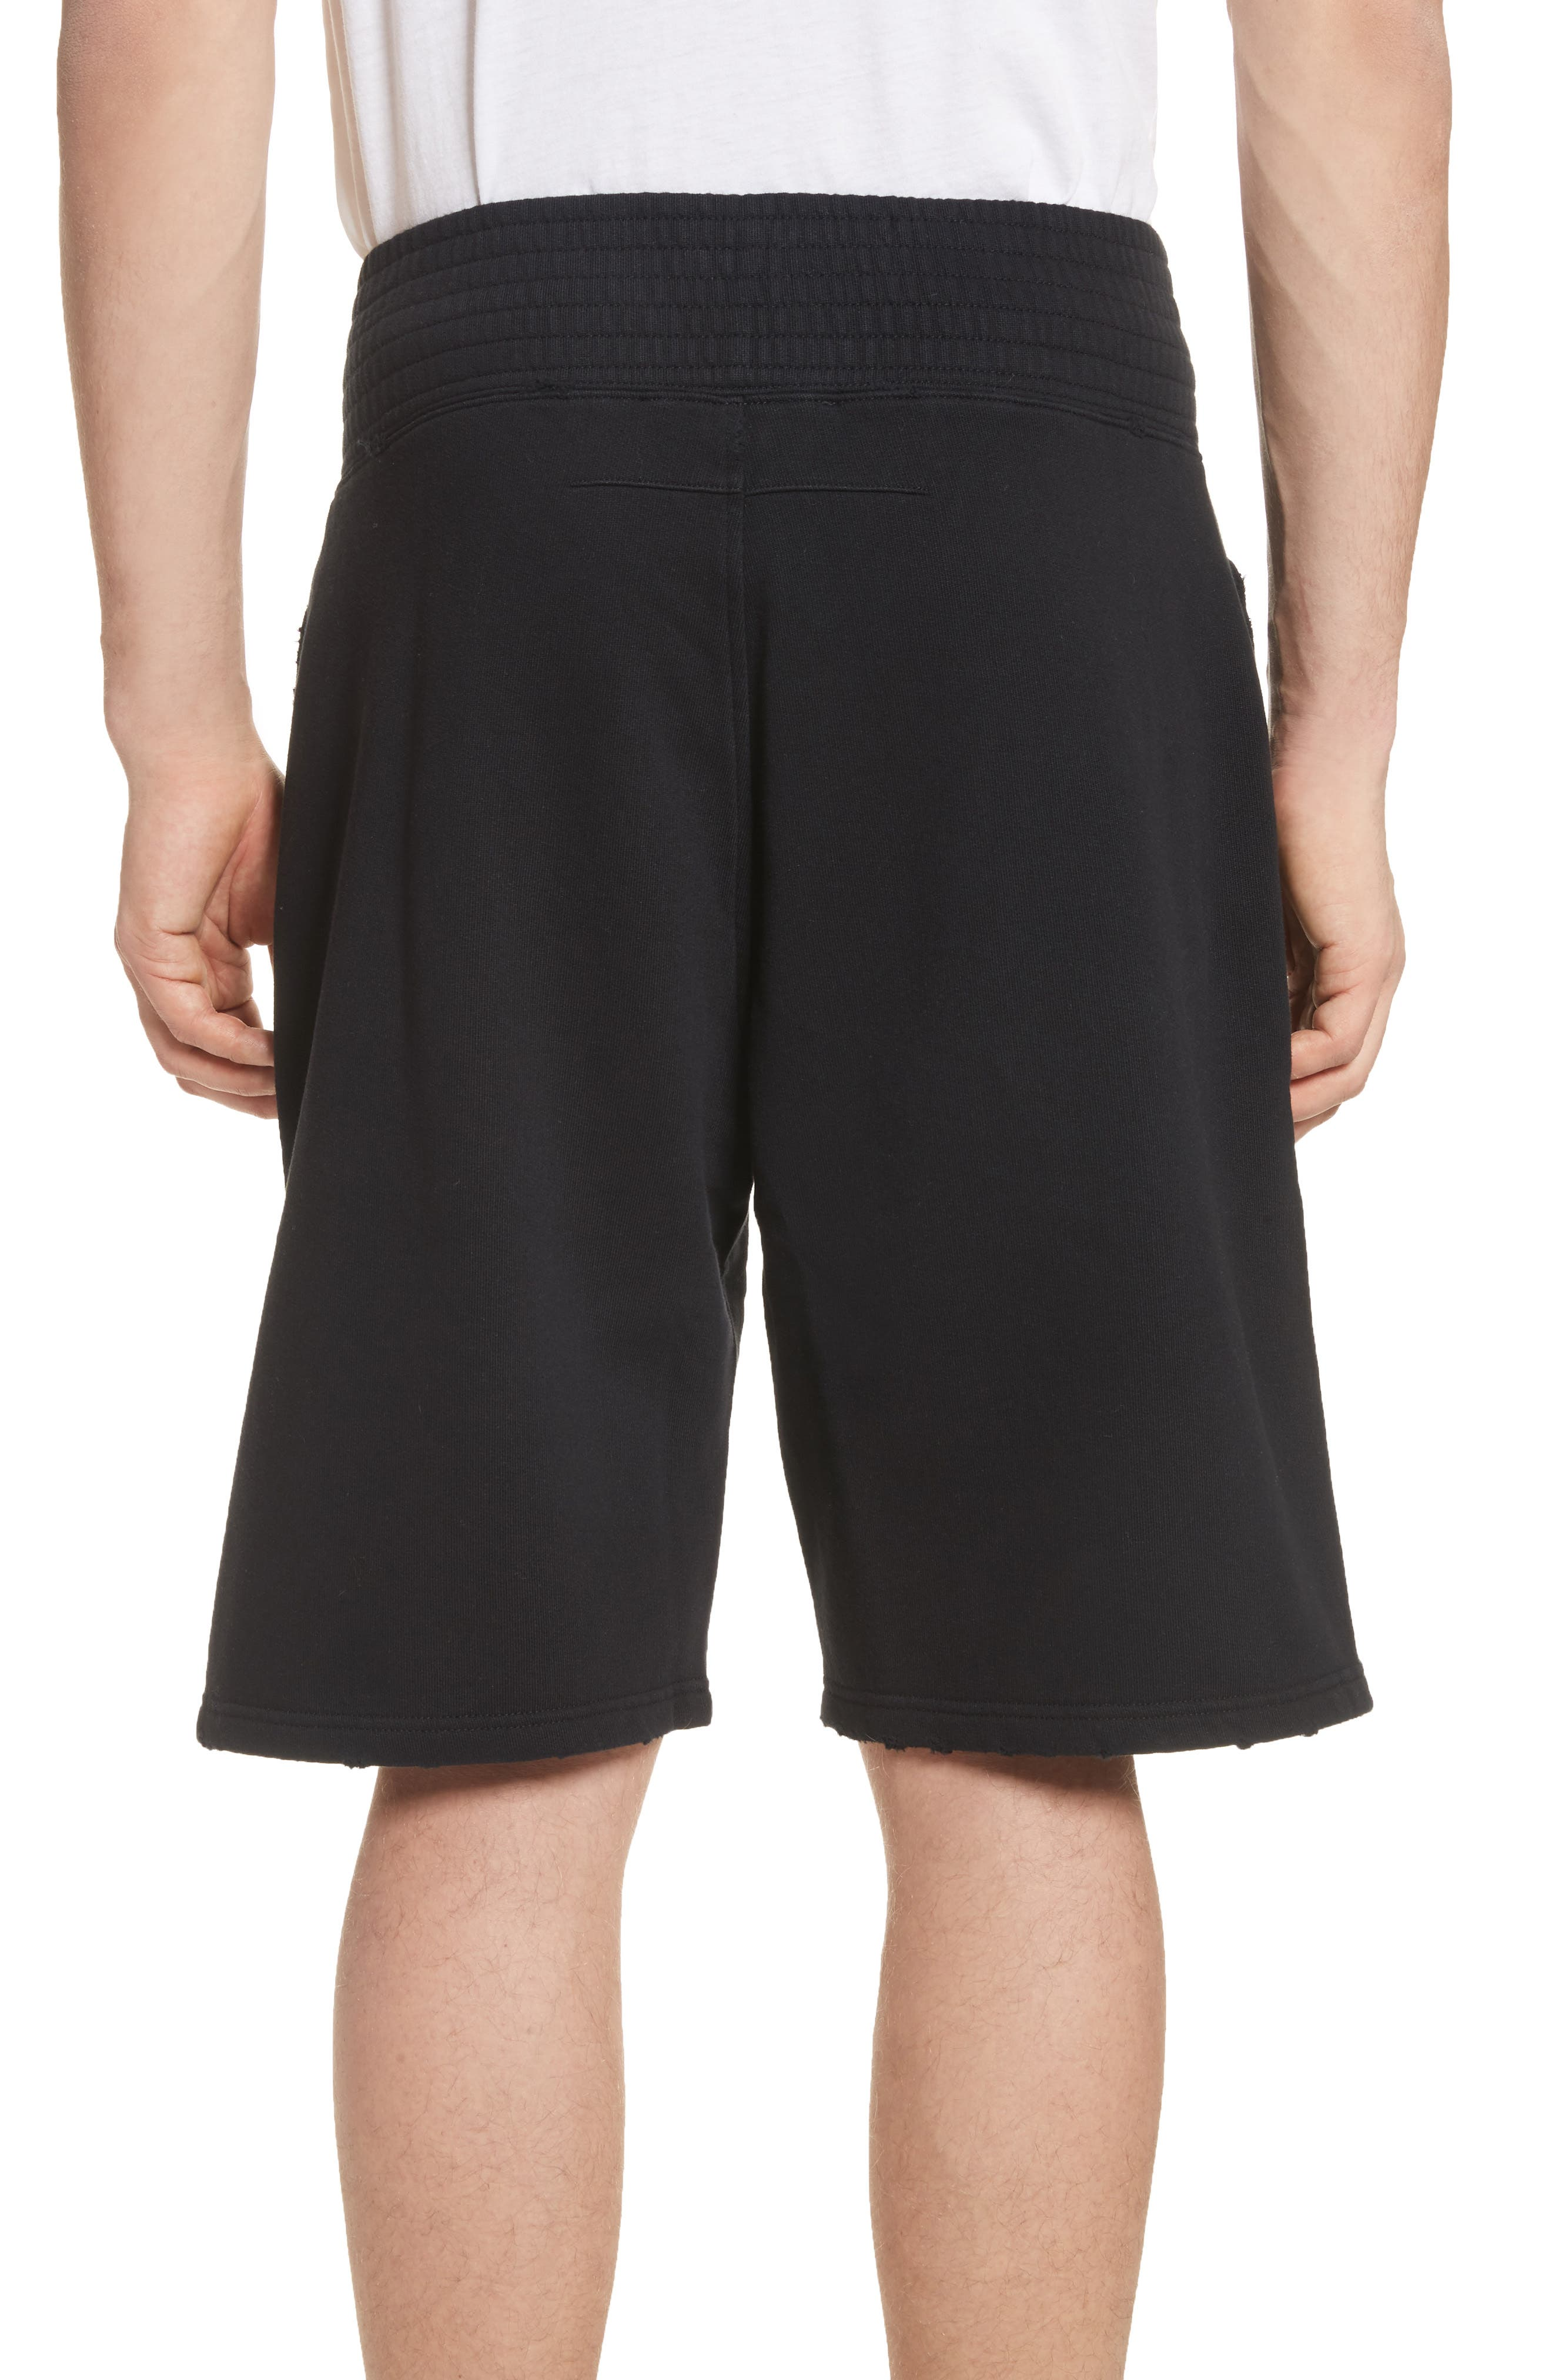 Knit Boxing Shorts,                             Alternate thumbnail 2, color,                             Black